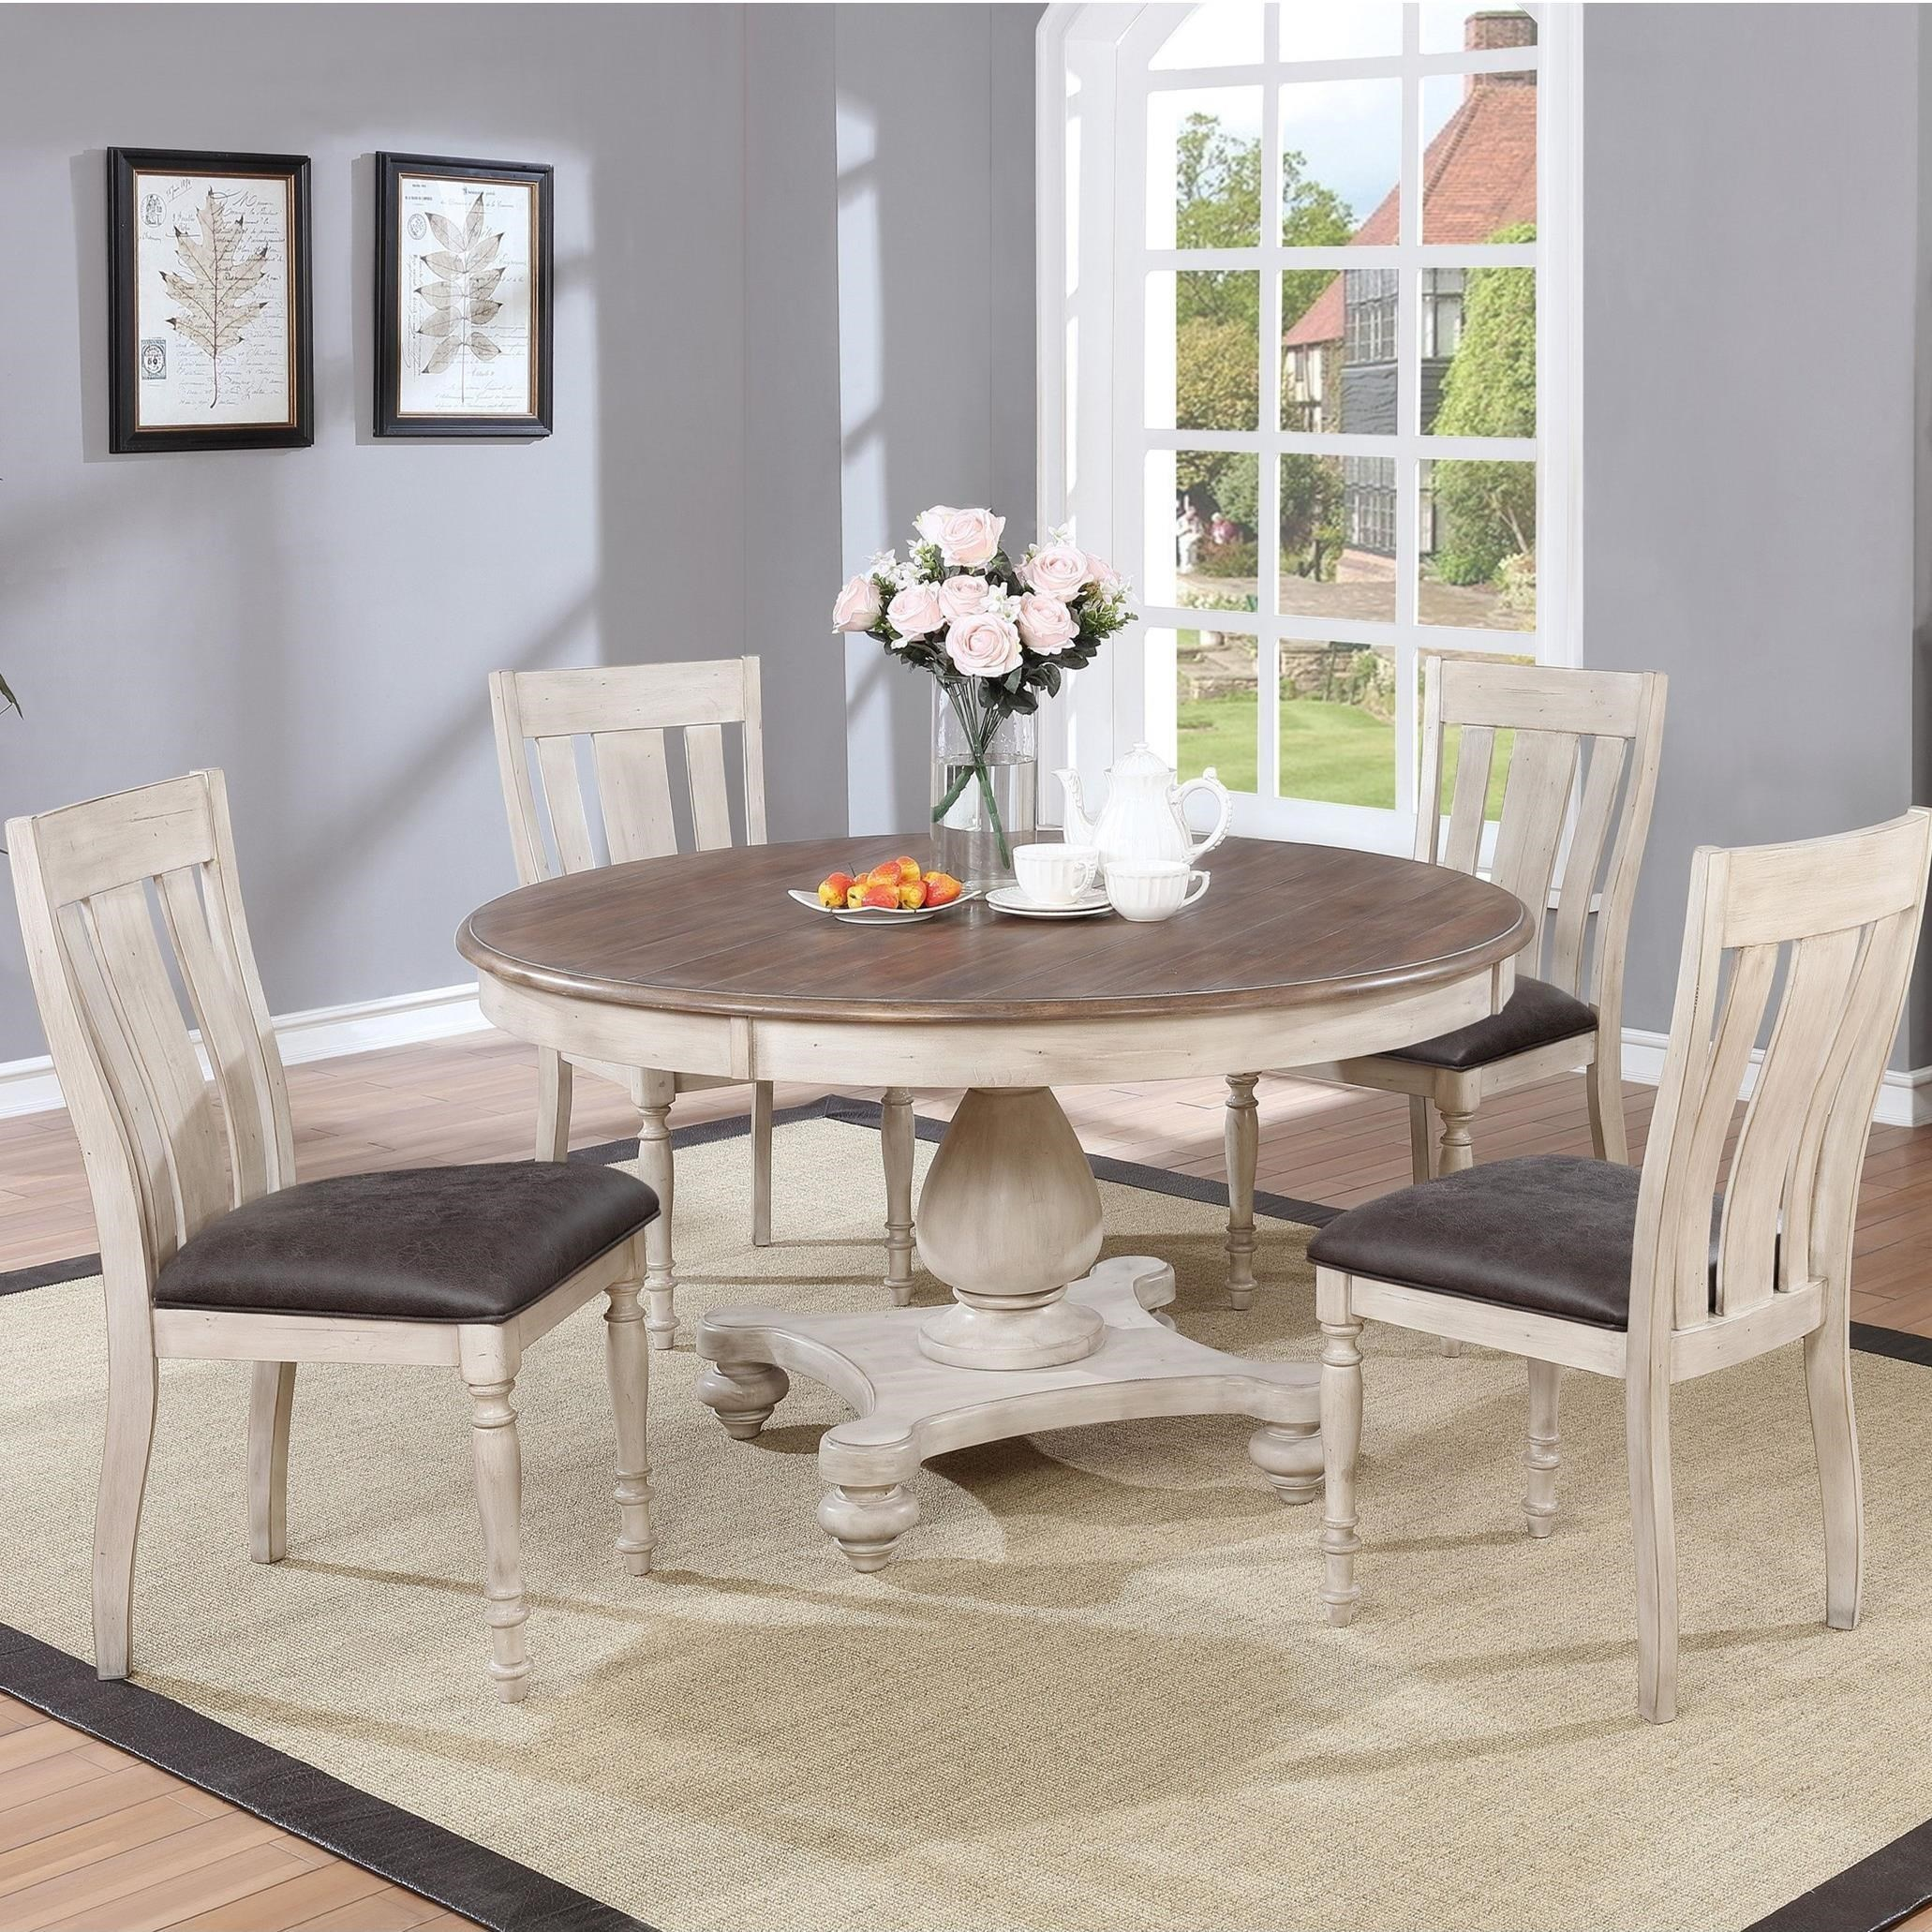 Black Dining Room Table And Chairs Harlow 5pc Farmhouse Dining Table Chair Set By Lifestyle At Rotmans